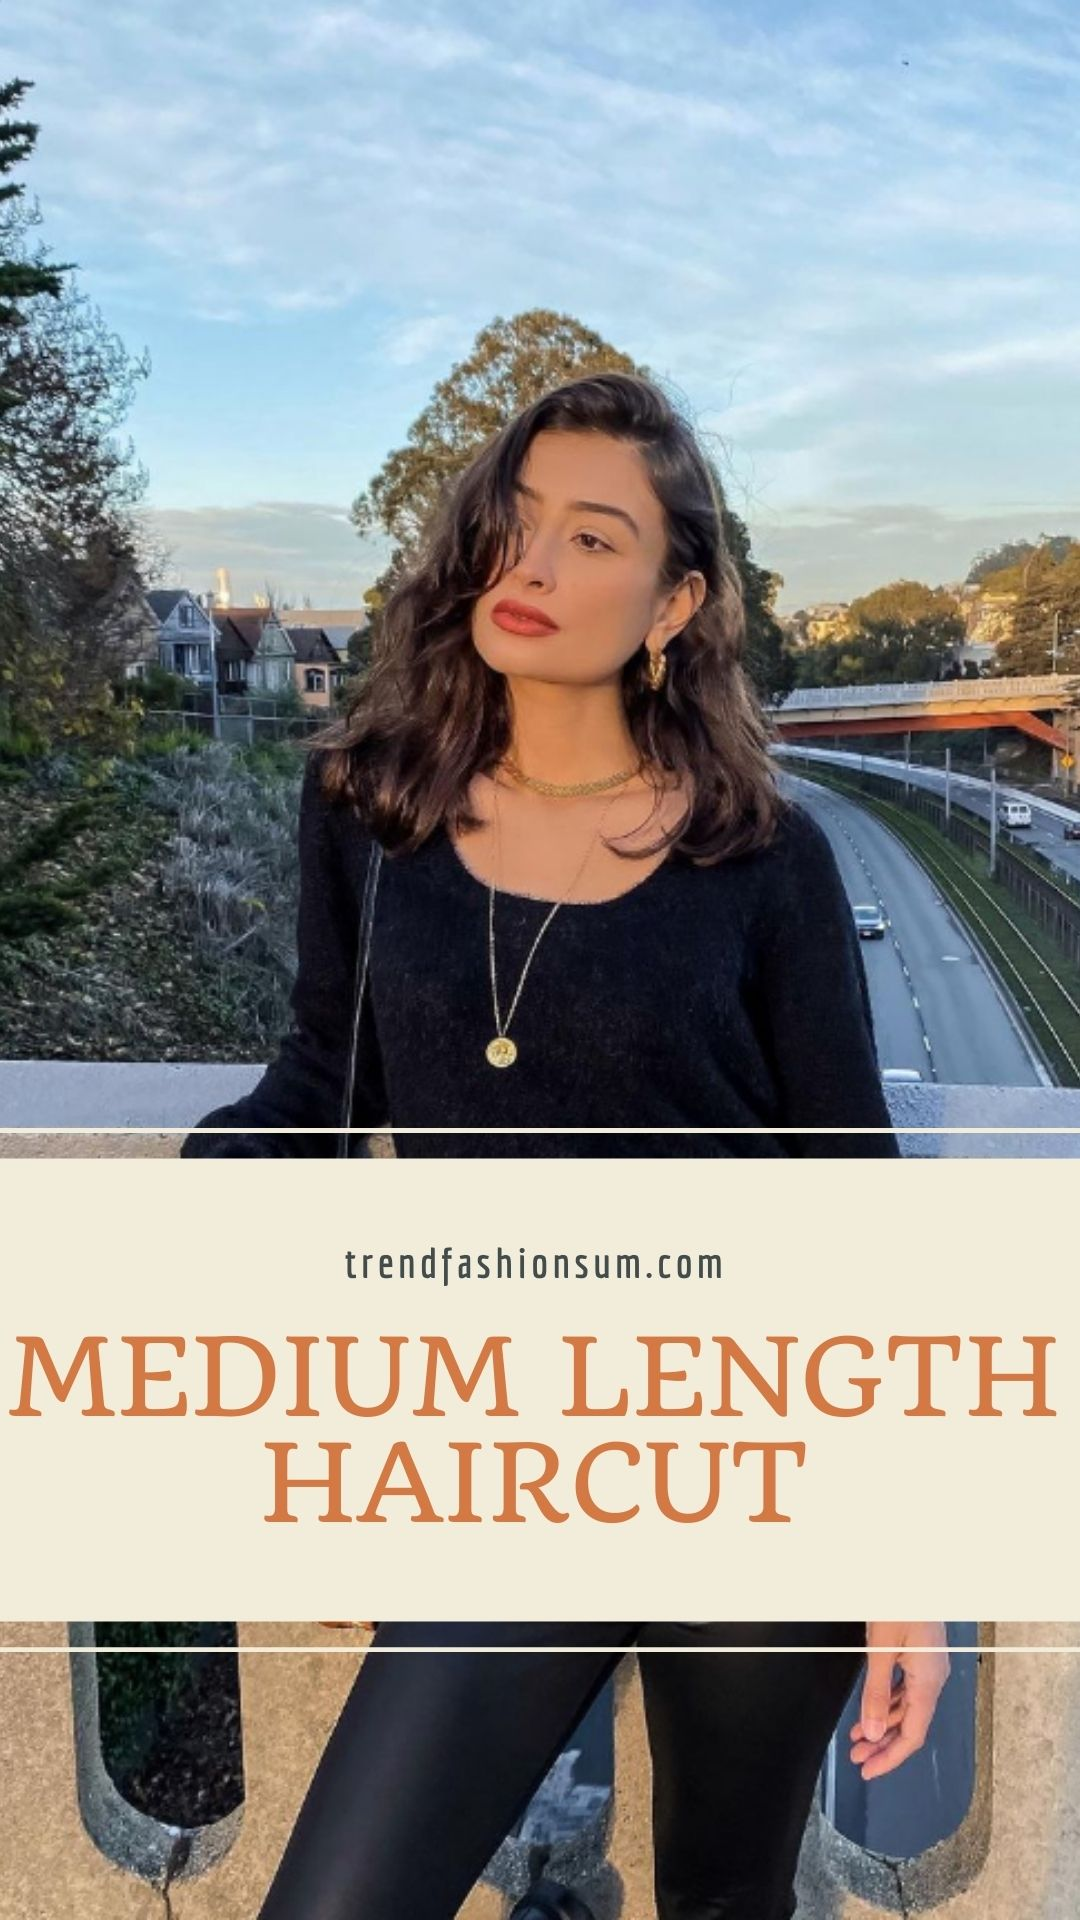 Medium length haircut   Stylish 2021 hairstyles for women of all ages